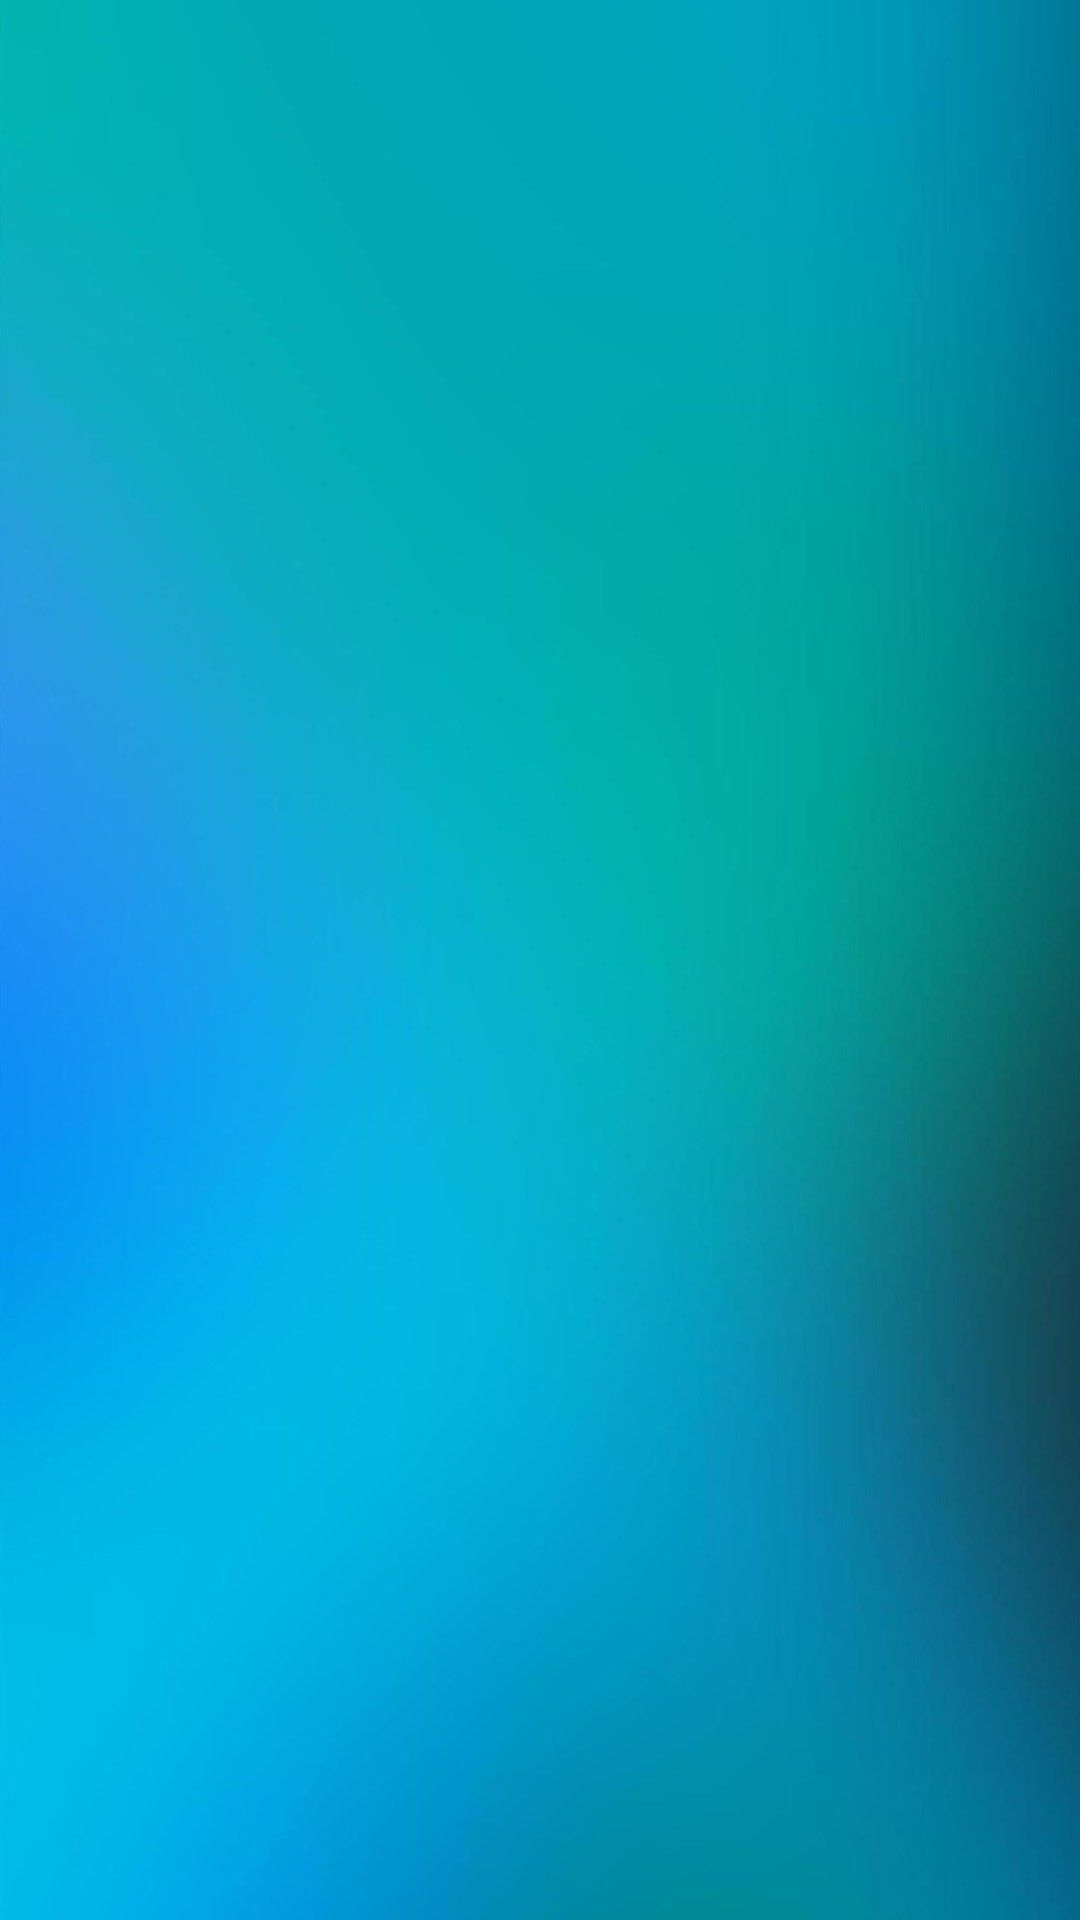 Gradient Blue Blue Backgrounds Turquoise Fabric Color